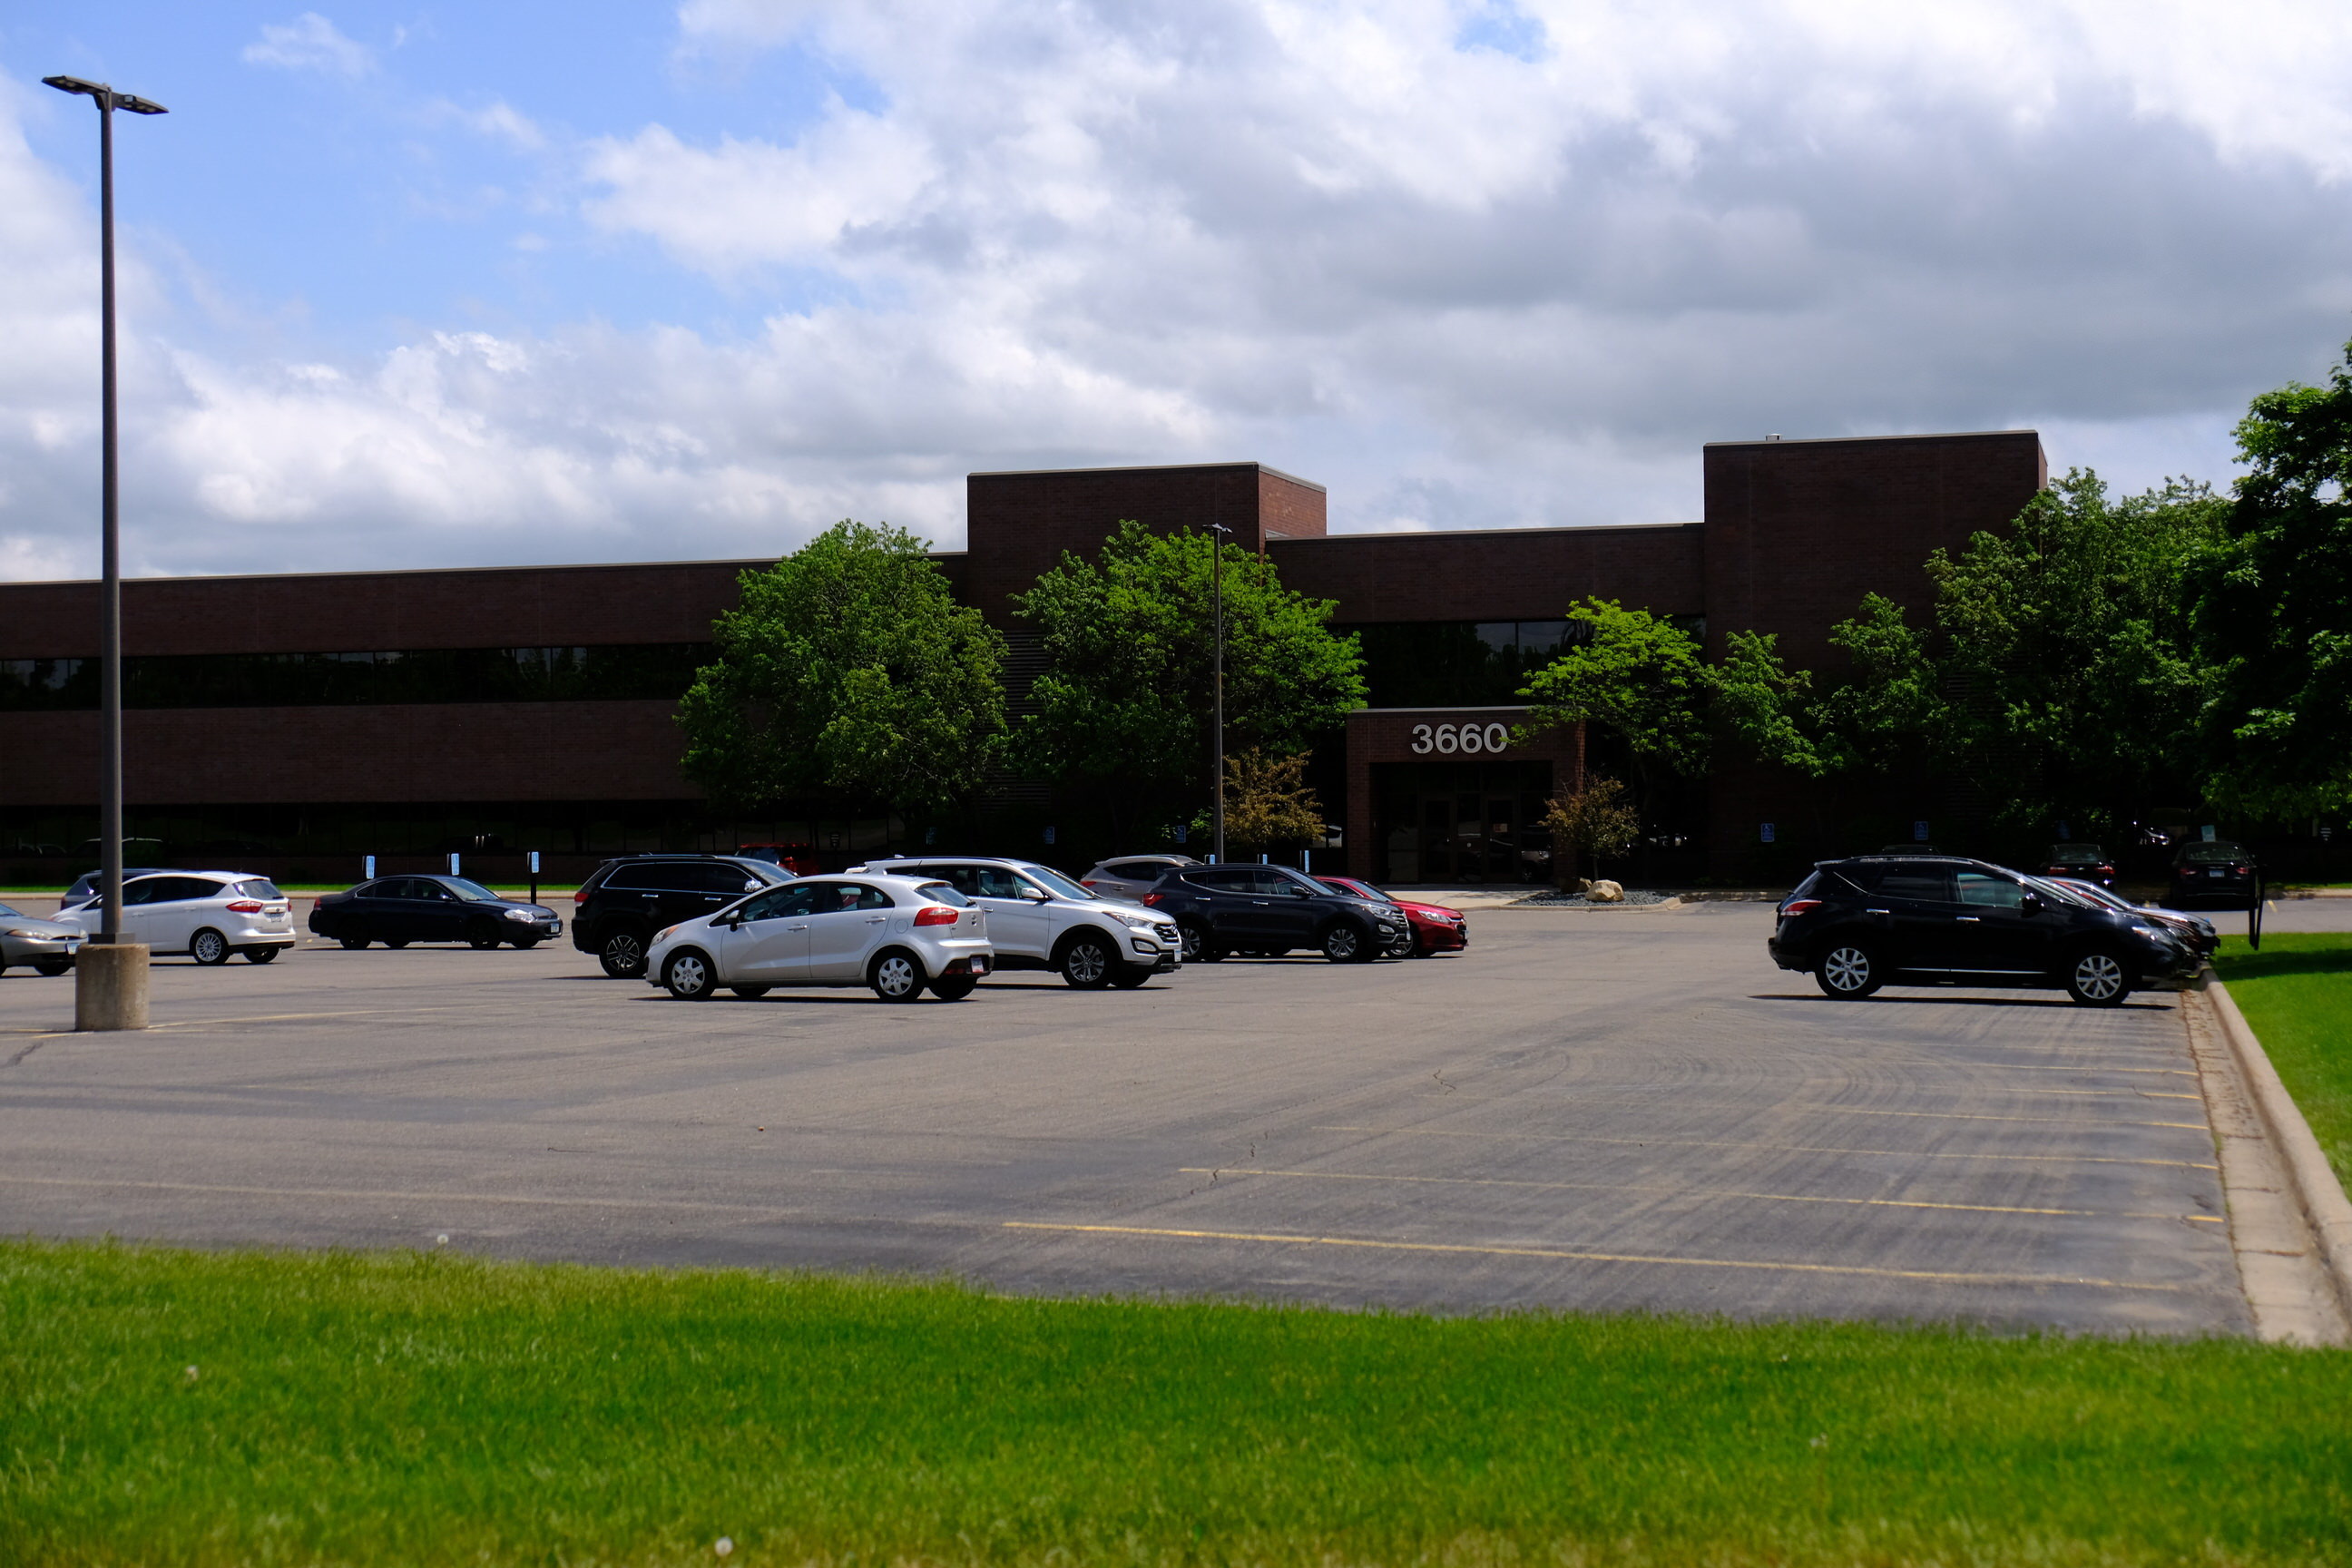 Deluxe's corporate headquarters in Shoreview, Minnesota.